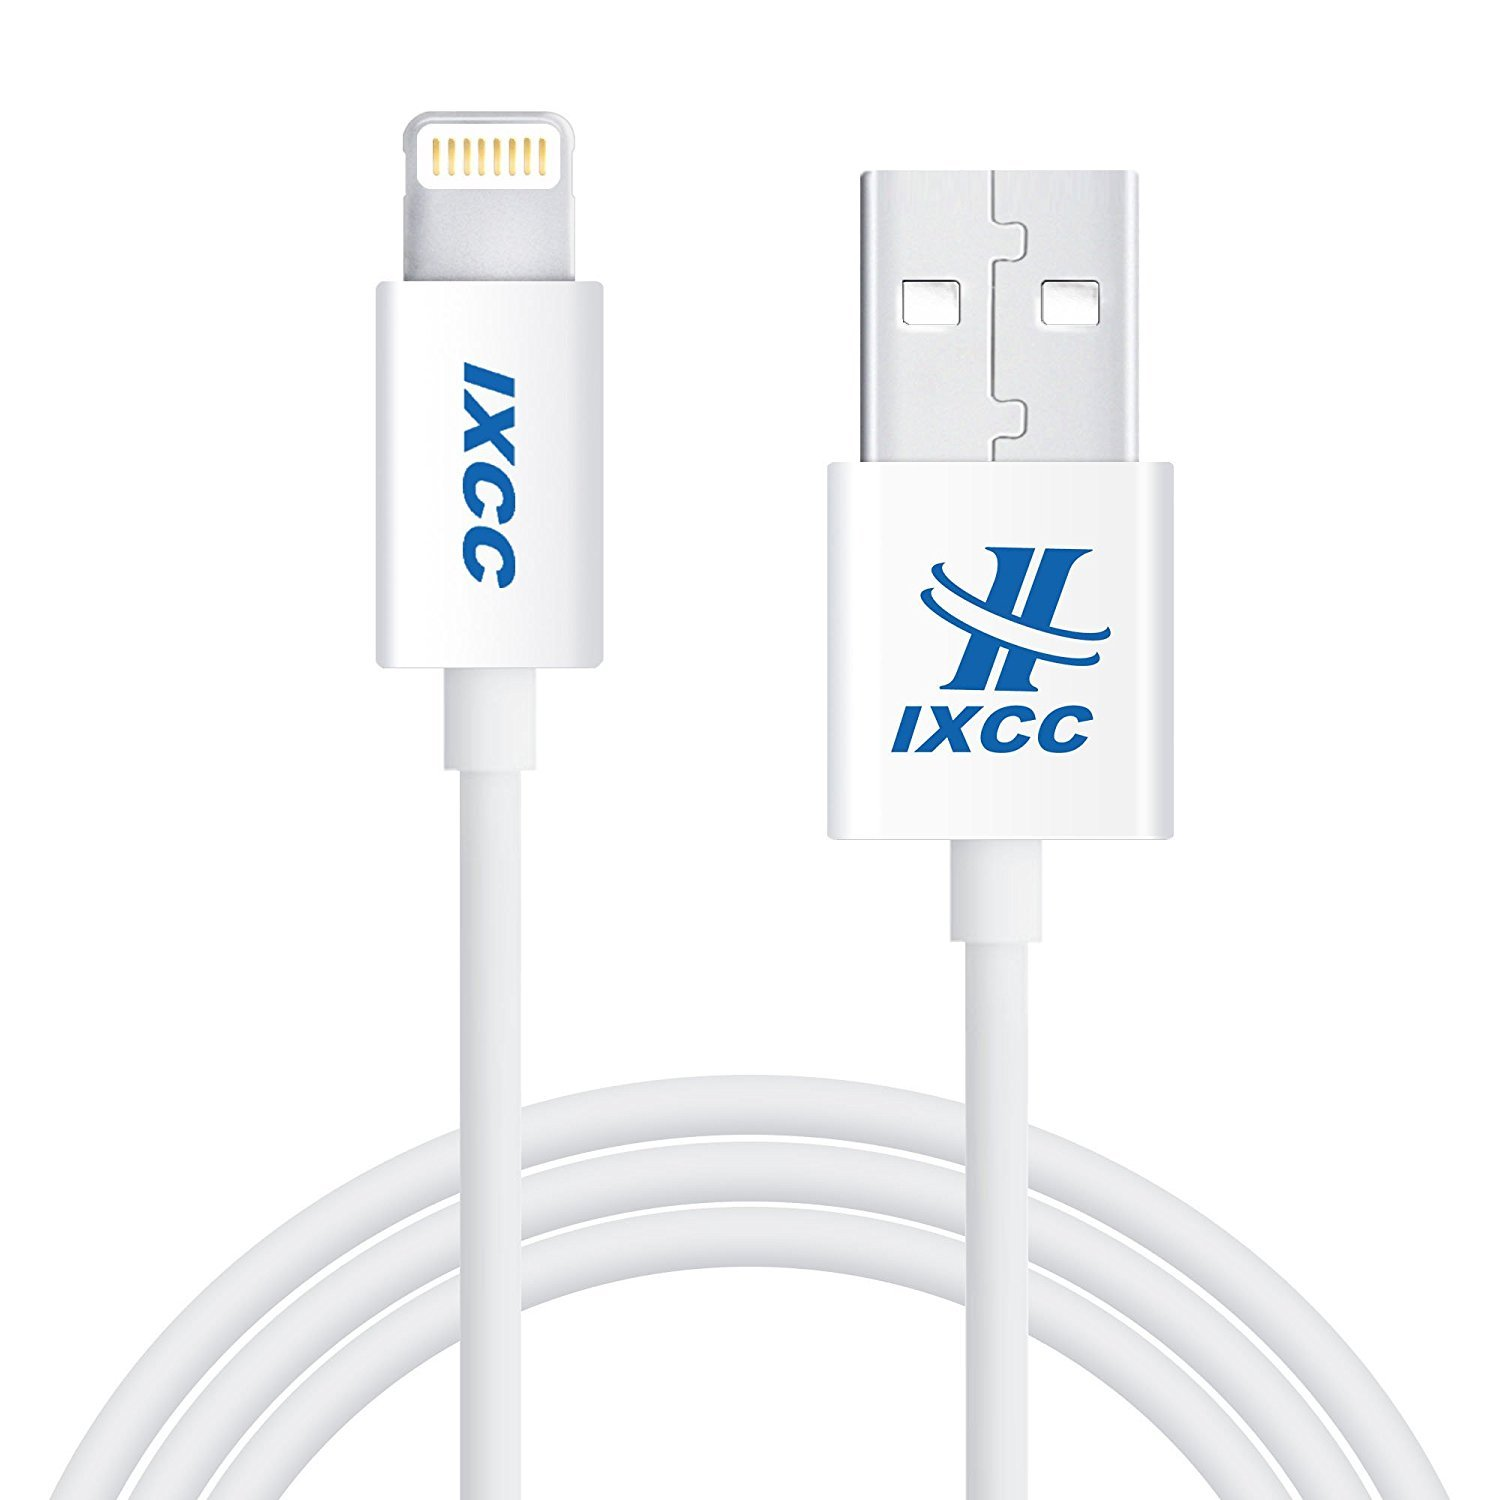 iXCC Element II Lightning Cable 3ft, iPhone charger, for iPhone X, 8, 8 Plus, 7, 7 Plus, 6s, 6s Plus, 6, 6 Plus, SE 5s 5c 5, iPad Air 2 Pro, iPad mini 2 3 4, iPad 4th Gen [Apple MFi Certified](White)